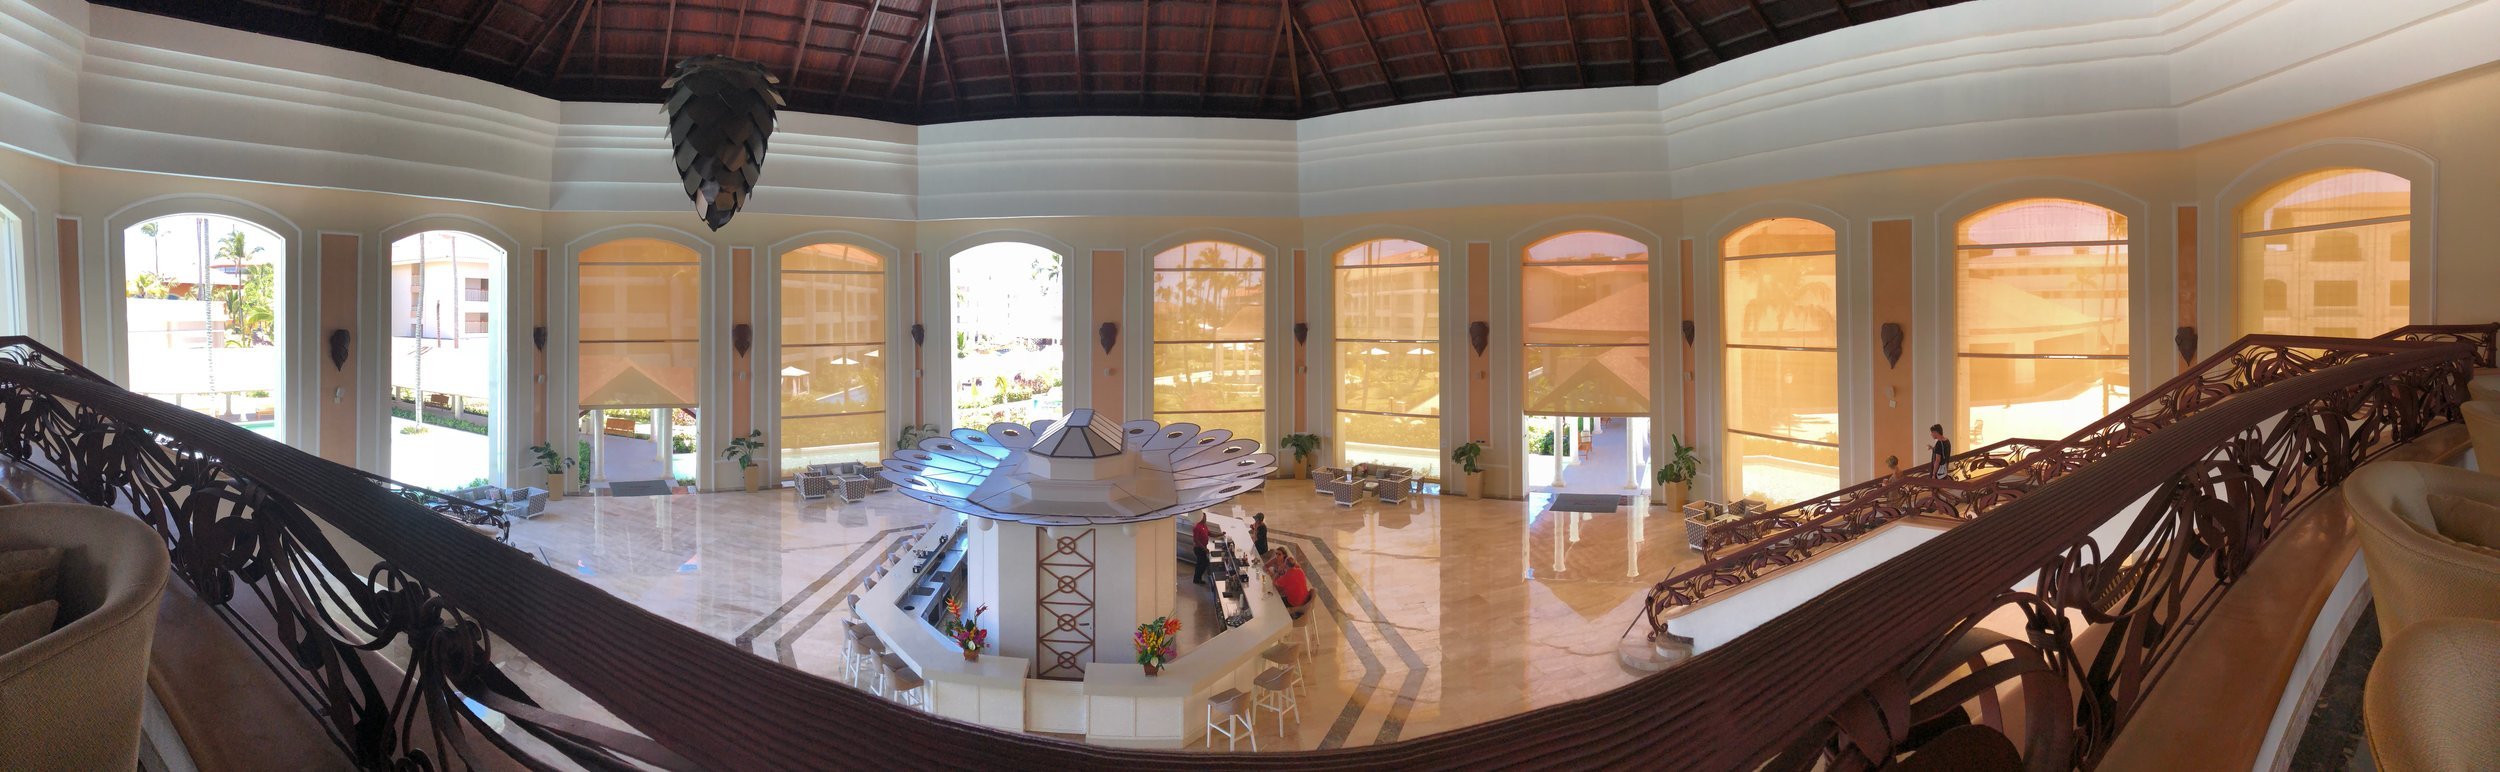 A view of the entire main lower lobby and bar.